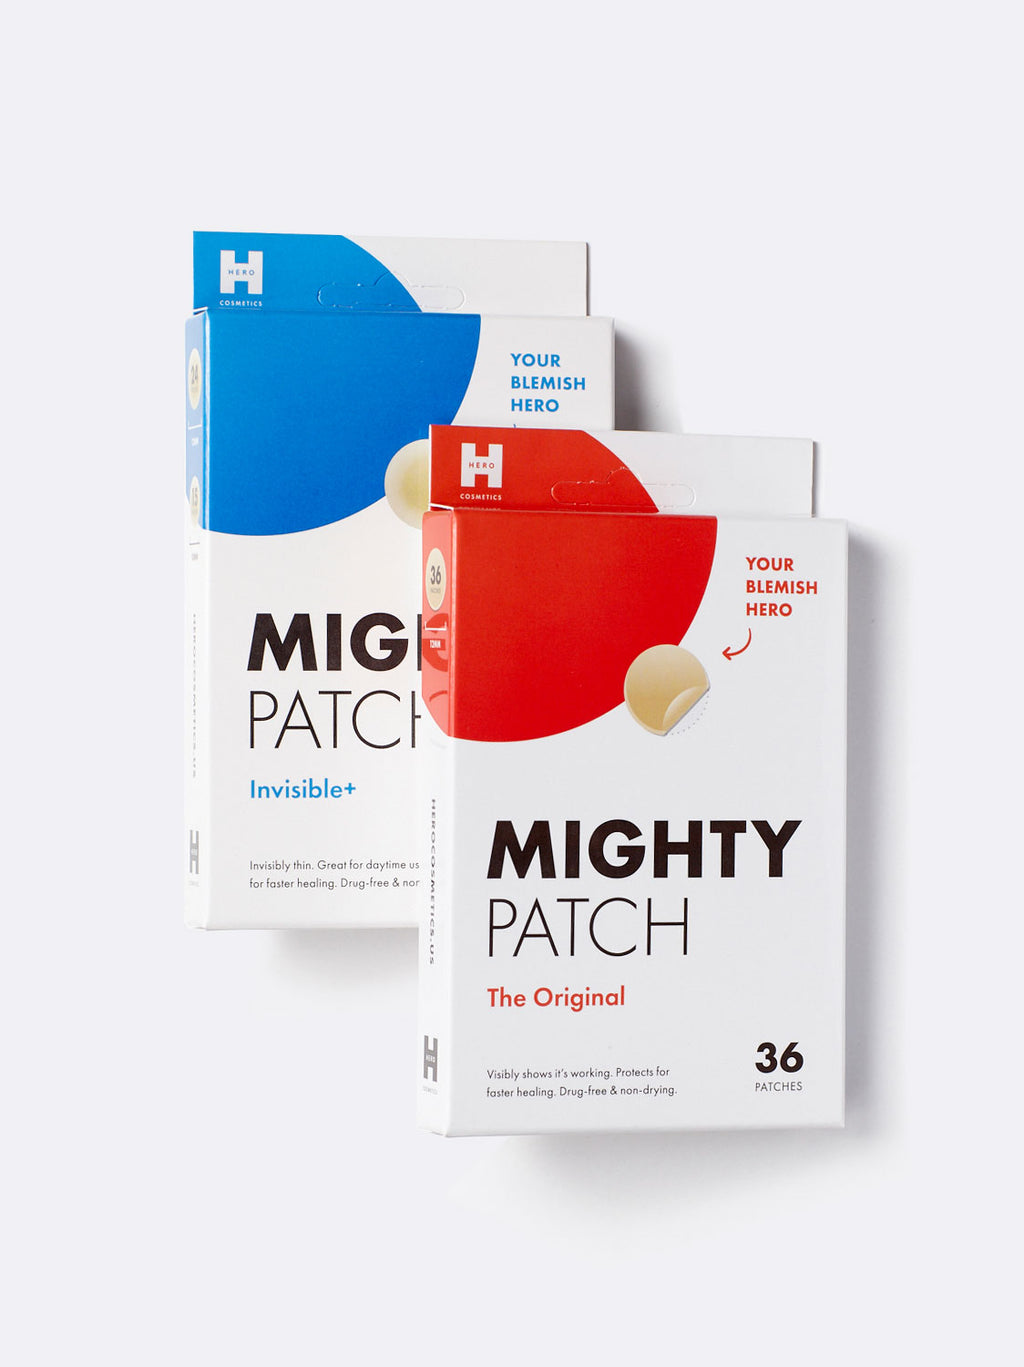 Mighty Patch Original and Invisible+ Bundle